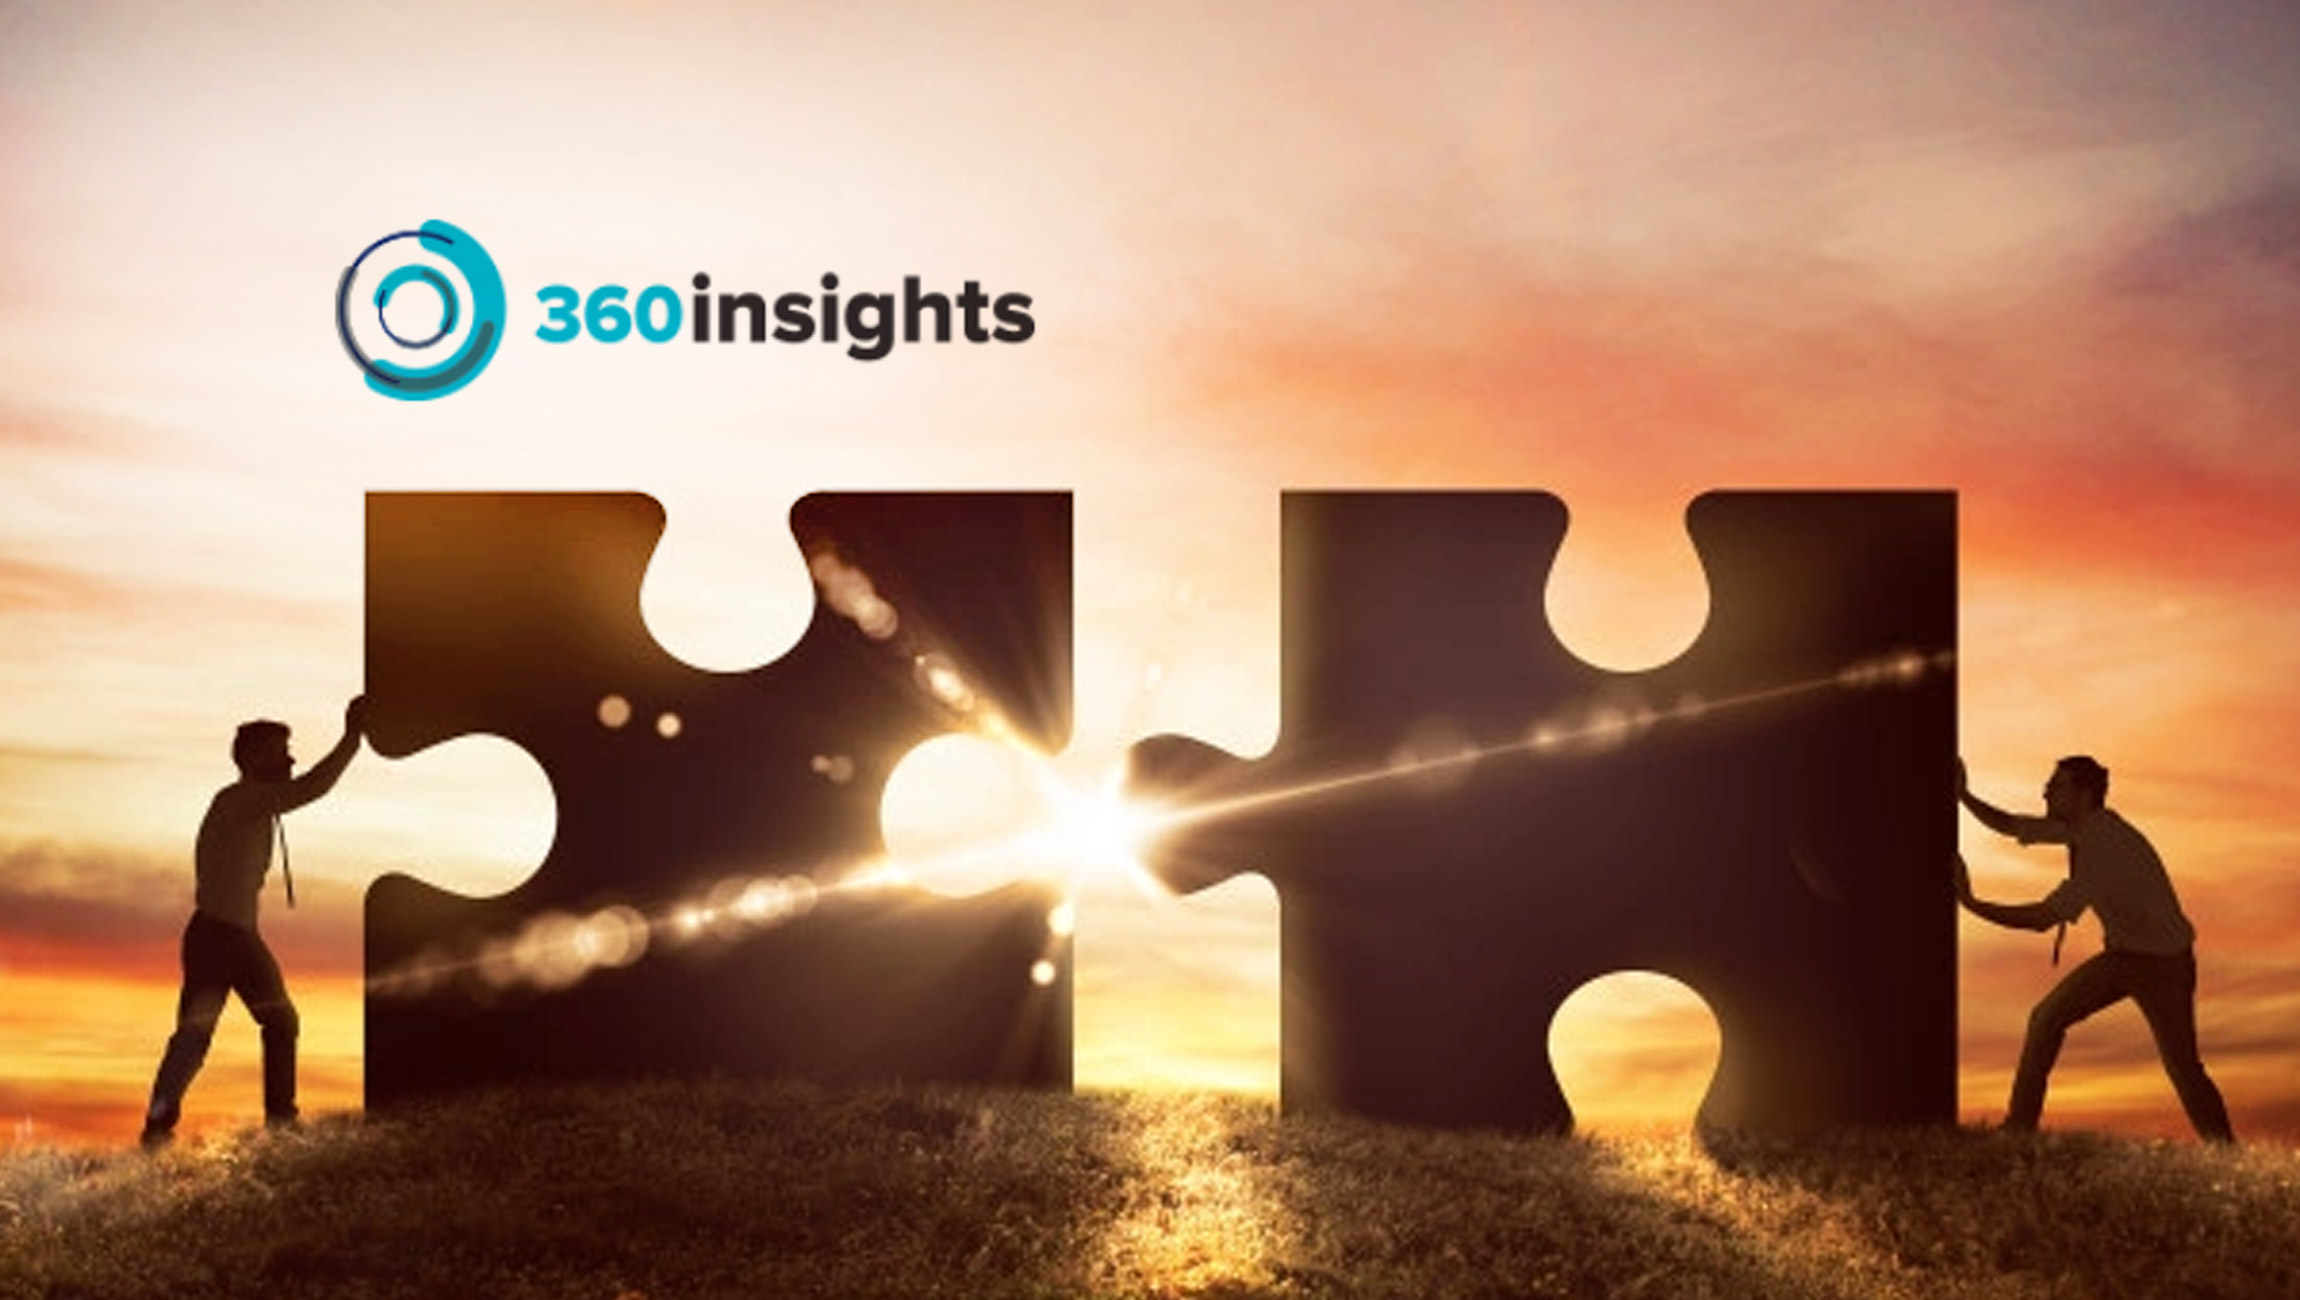 360insights Announces Acquisition of SaaS Company channelcentral.net